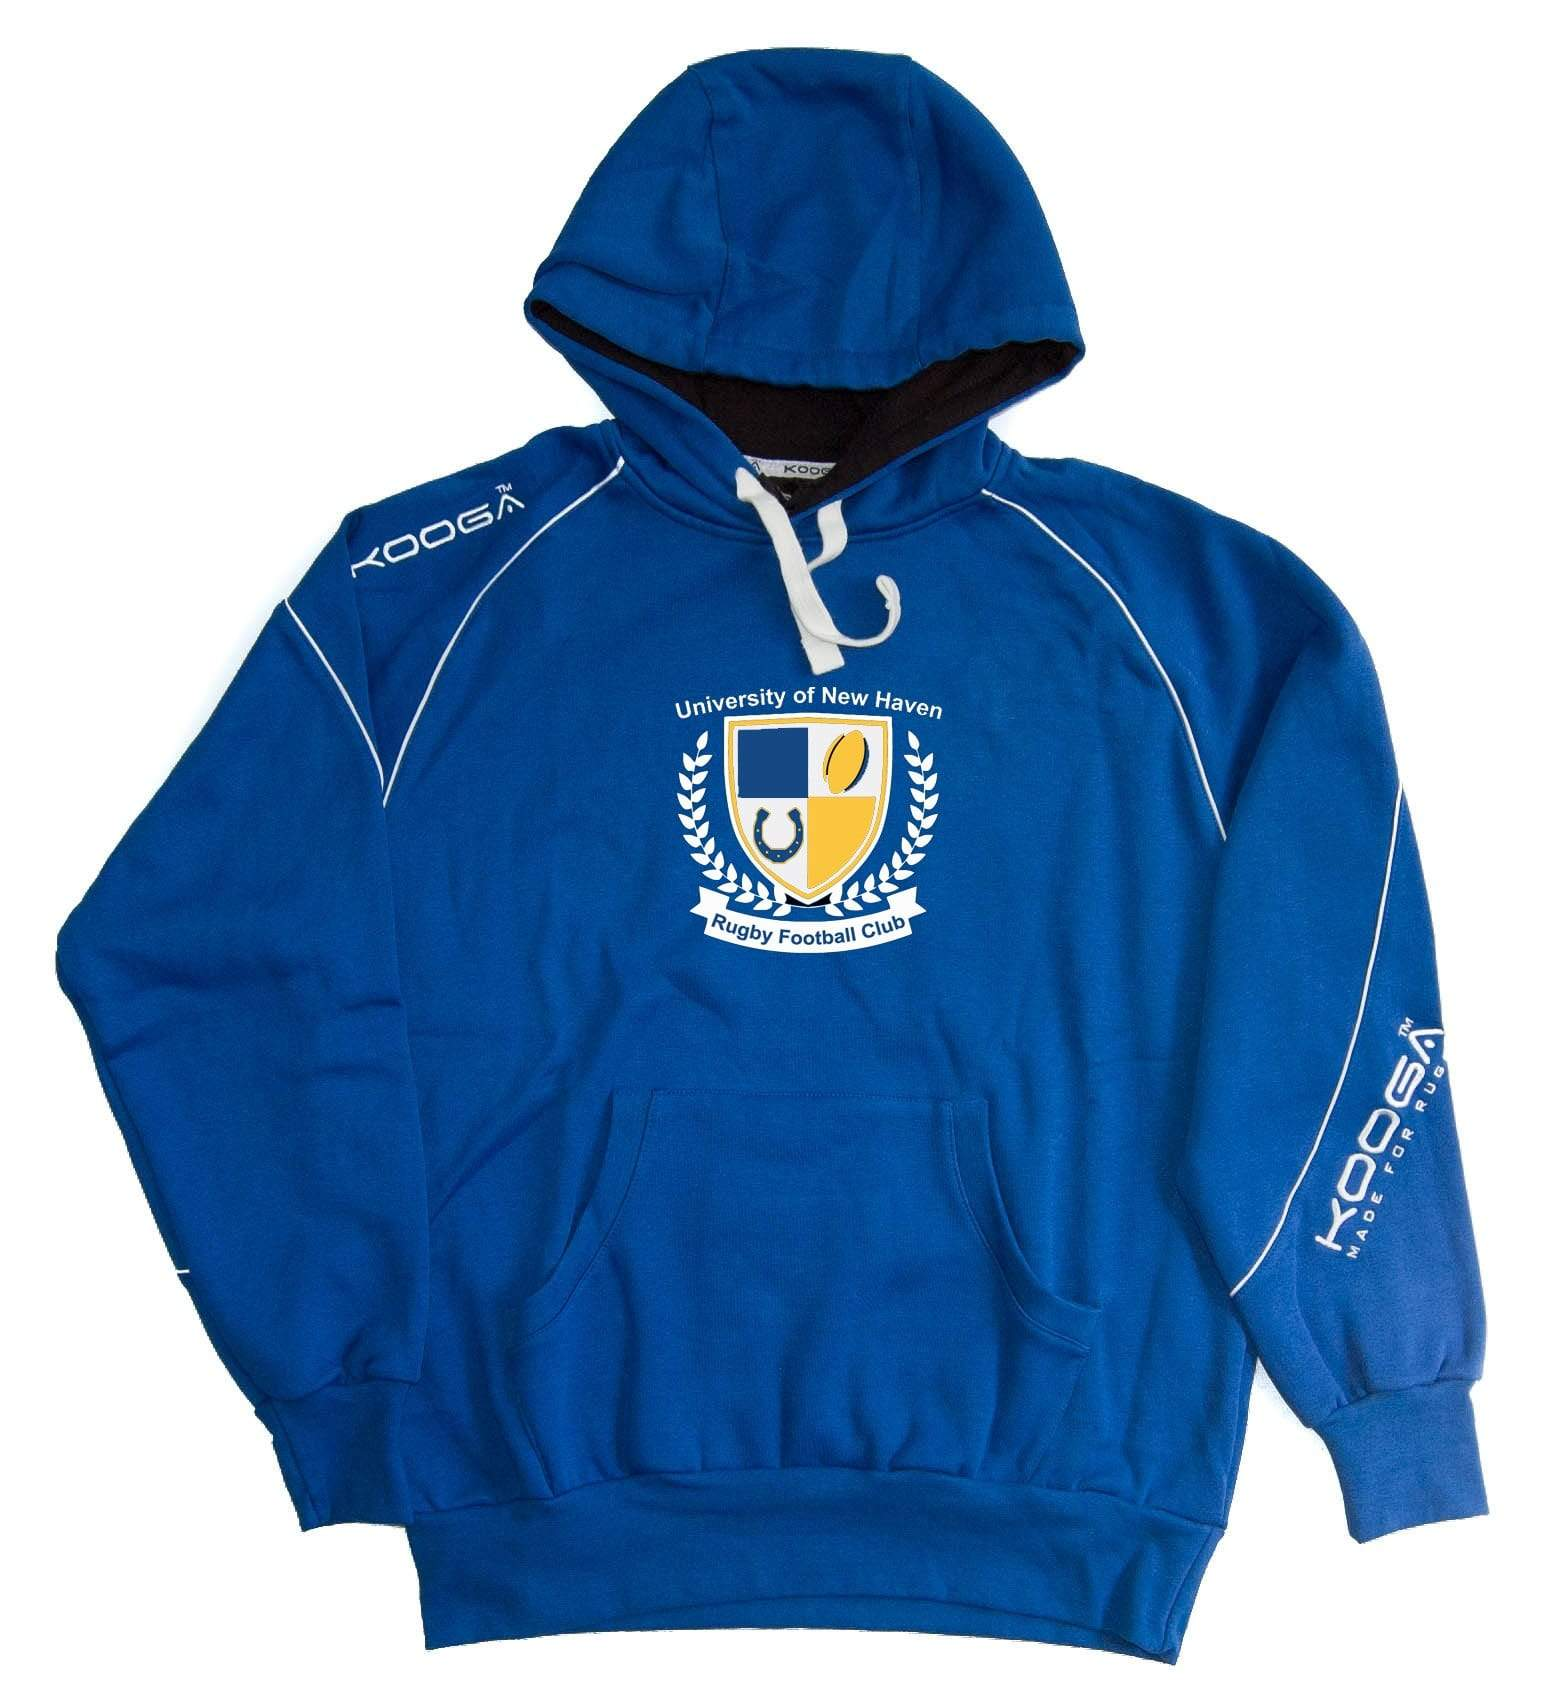 University of New Haven Hoody